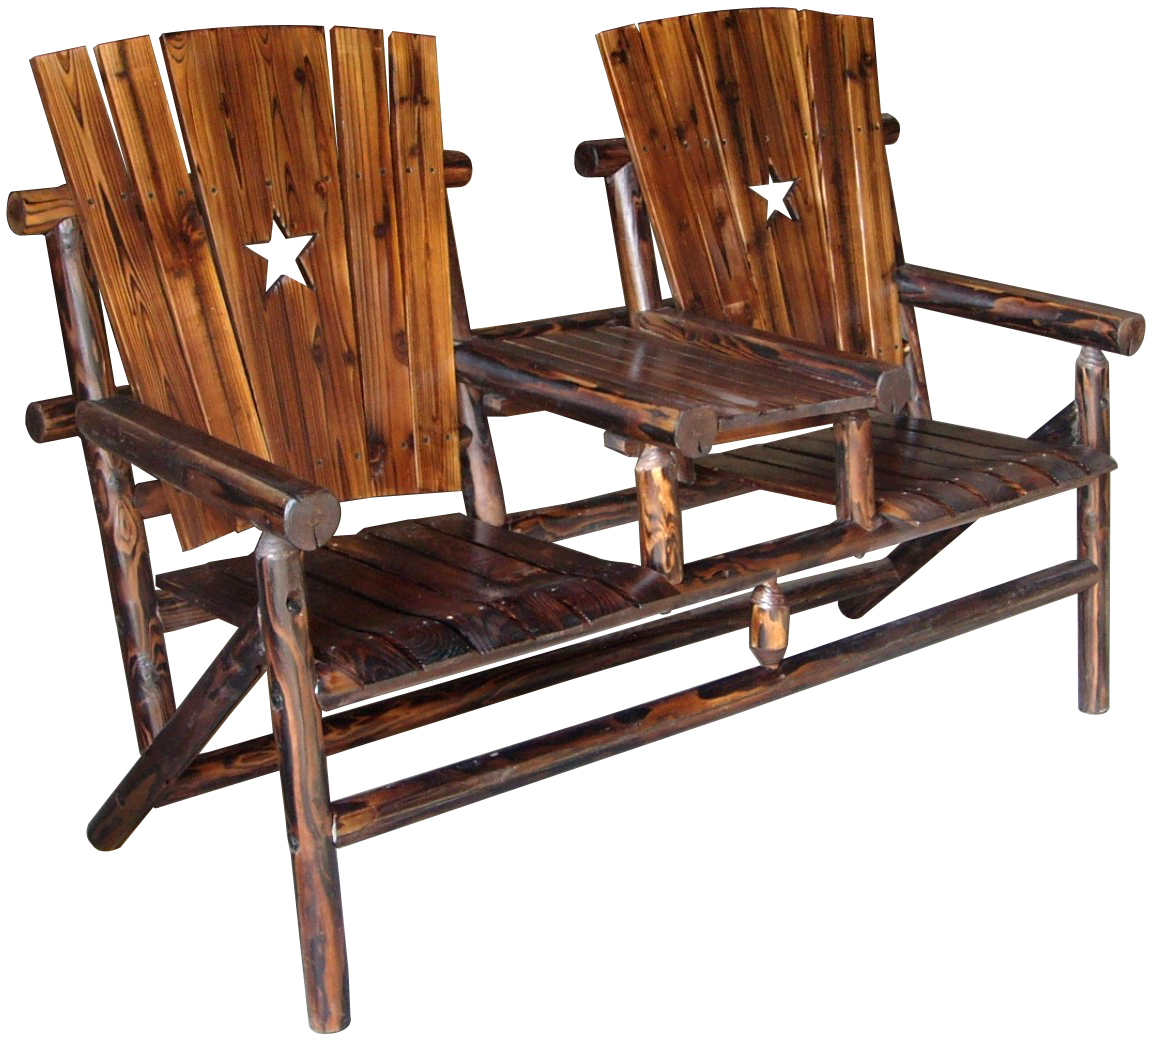 Western Chairs Texas And Western Furniture Wagon Wheel Furniture